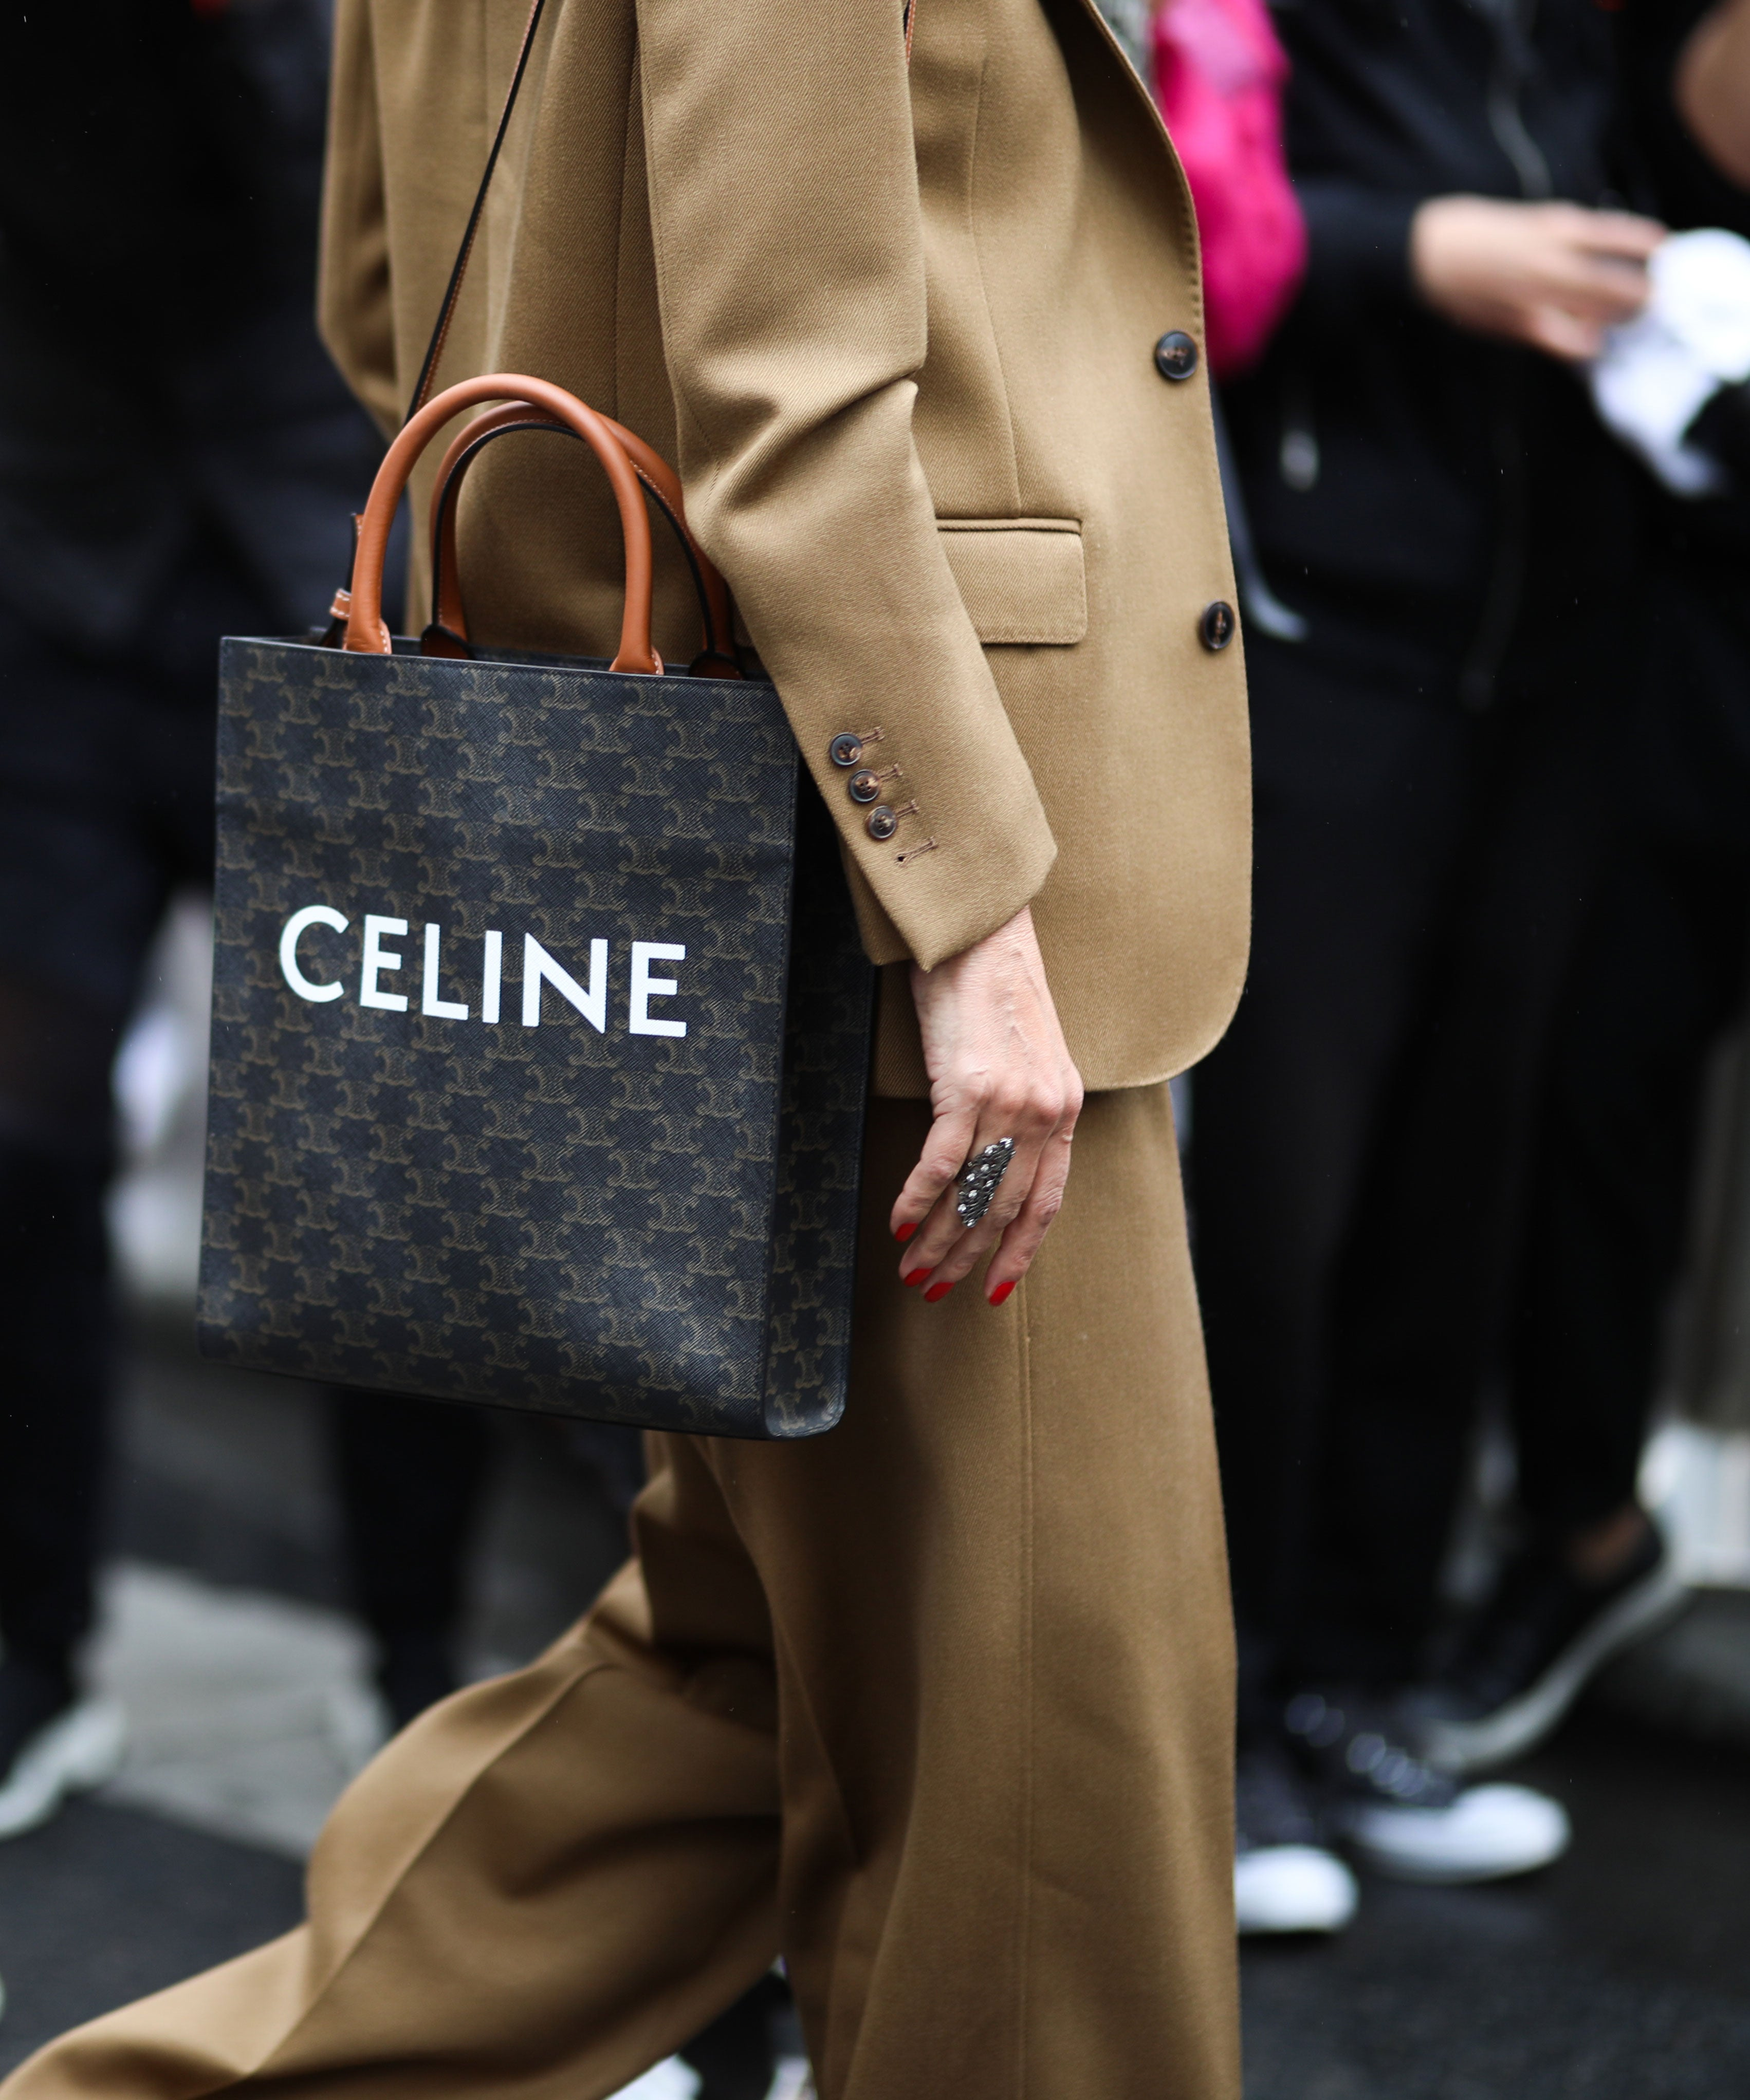 Celine Looks To The Future With New TikTok Star Campaign